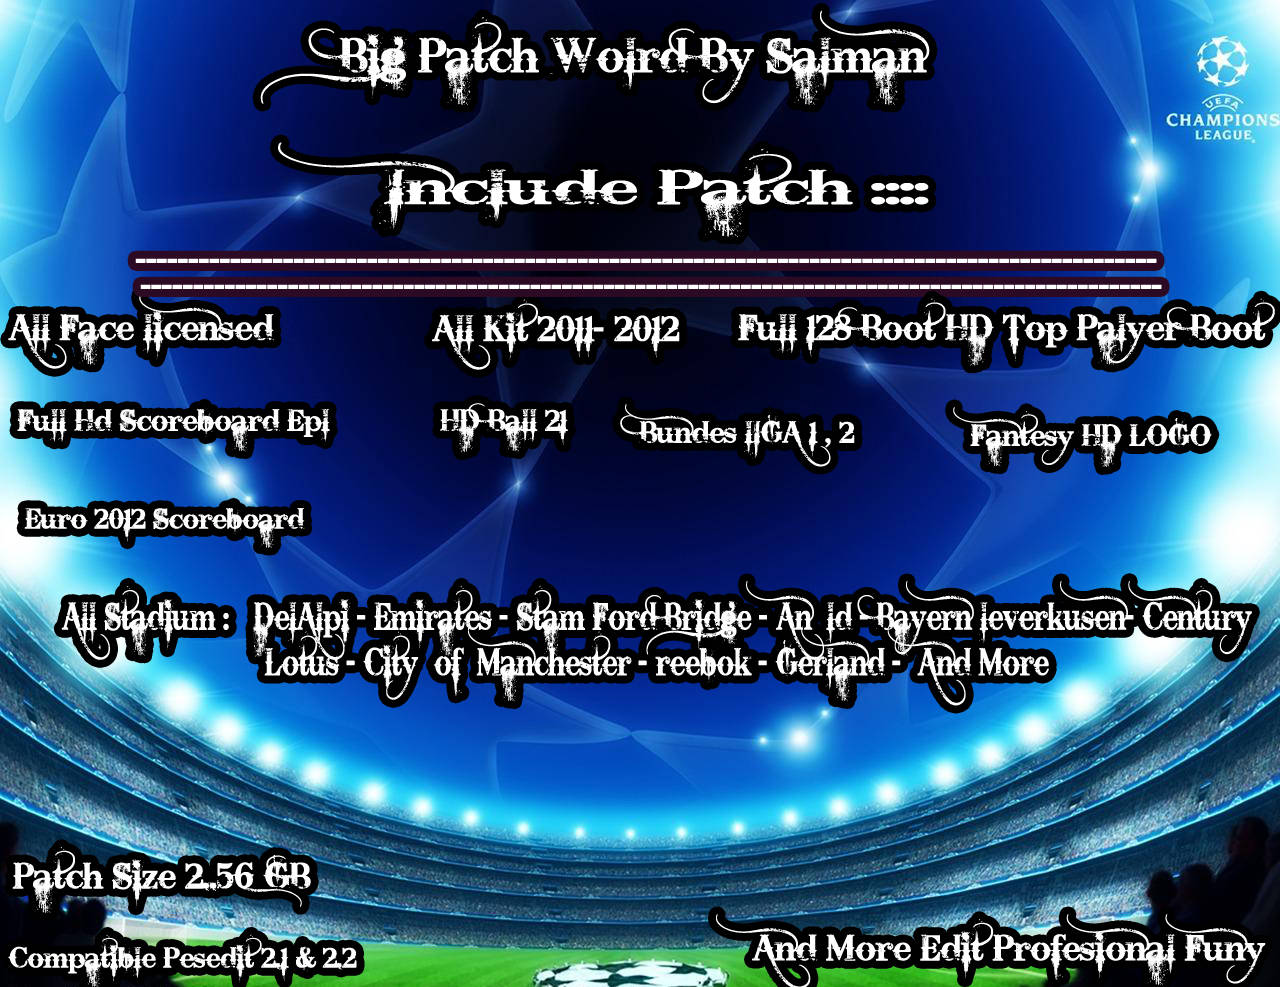 Big Patch World Cooming Soon